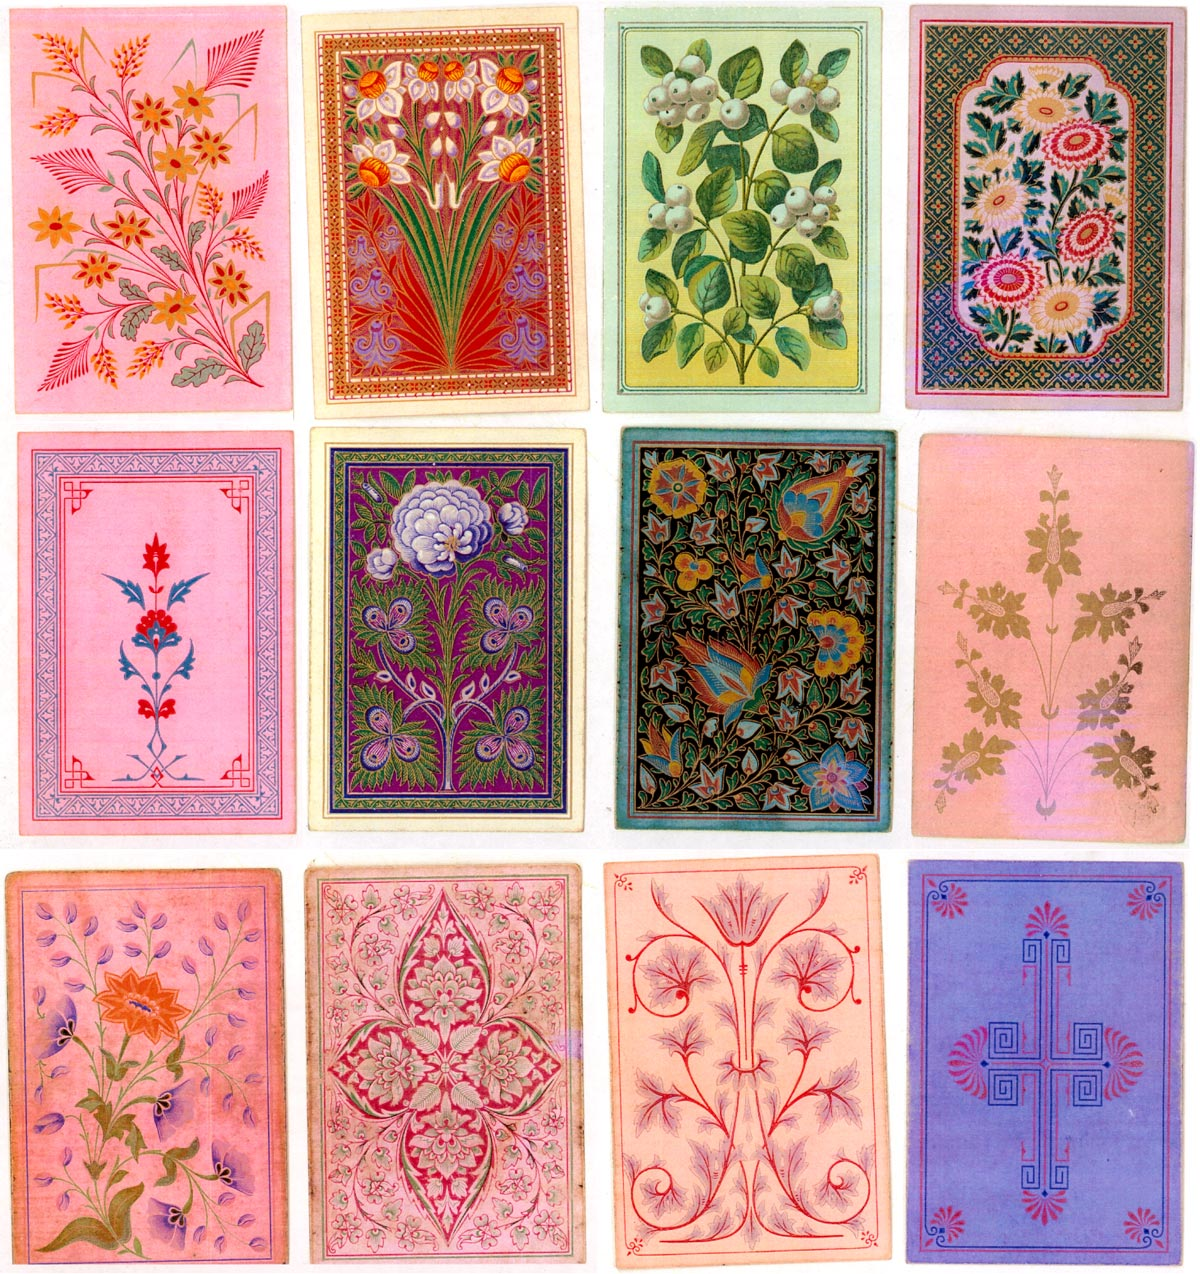 playing cards designed by Owen Jones (1809-1874)